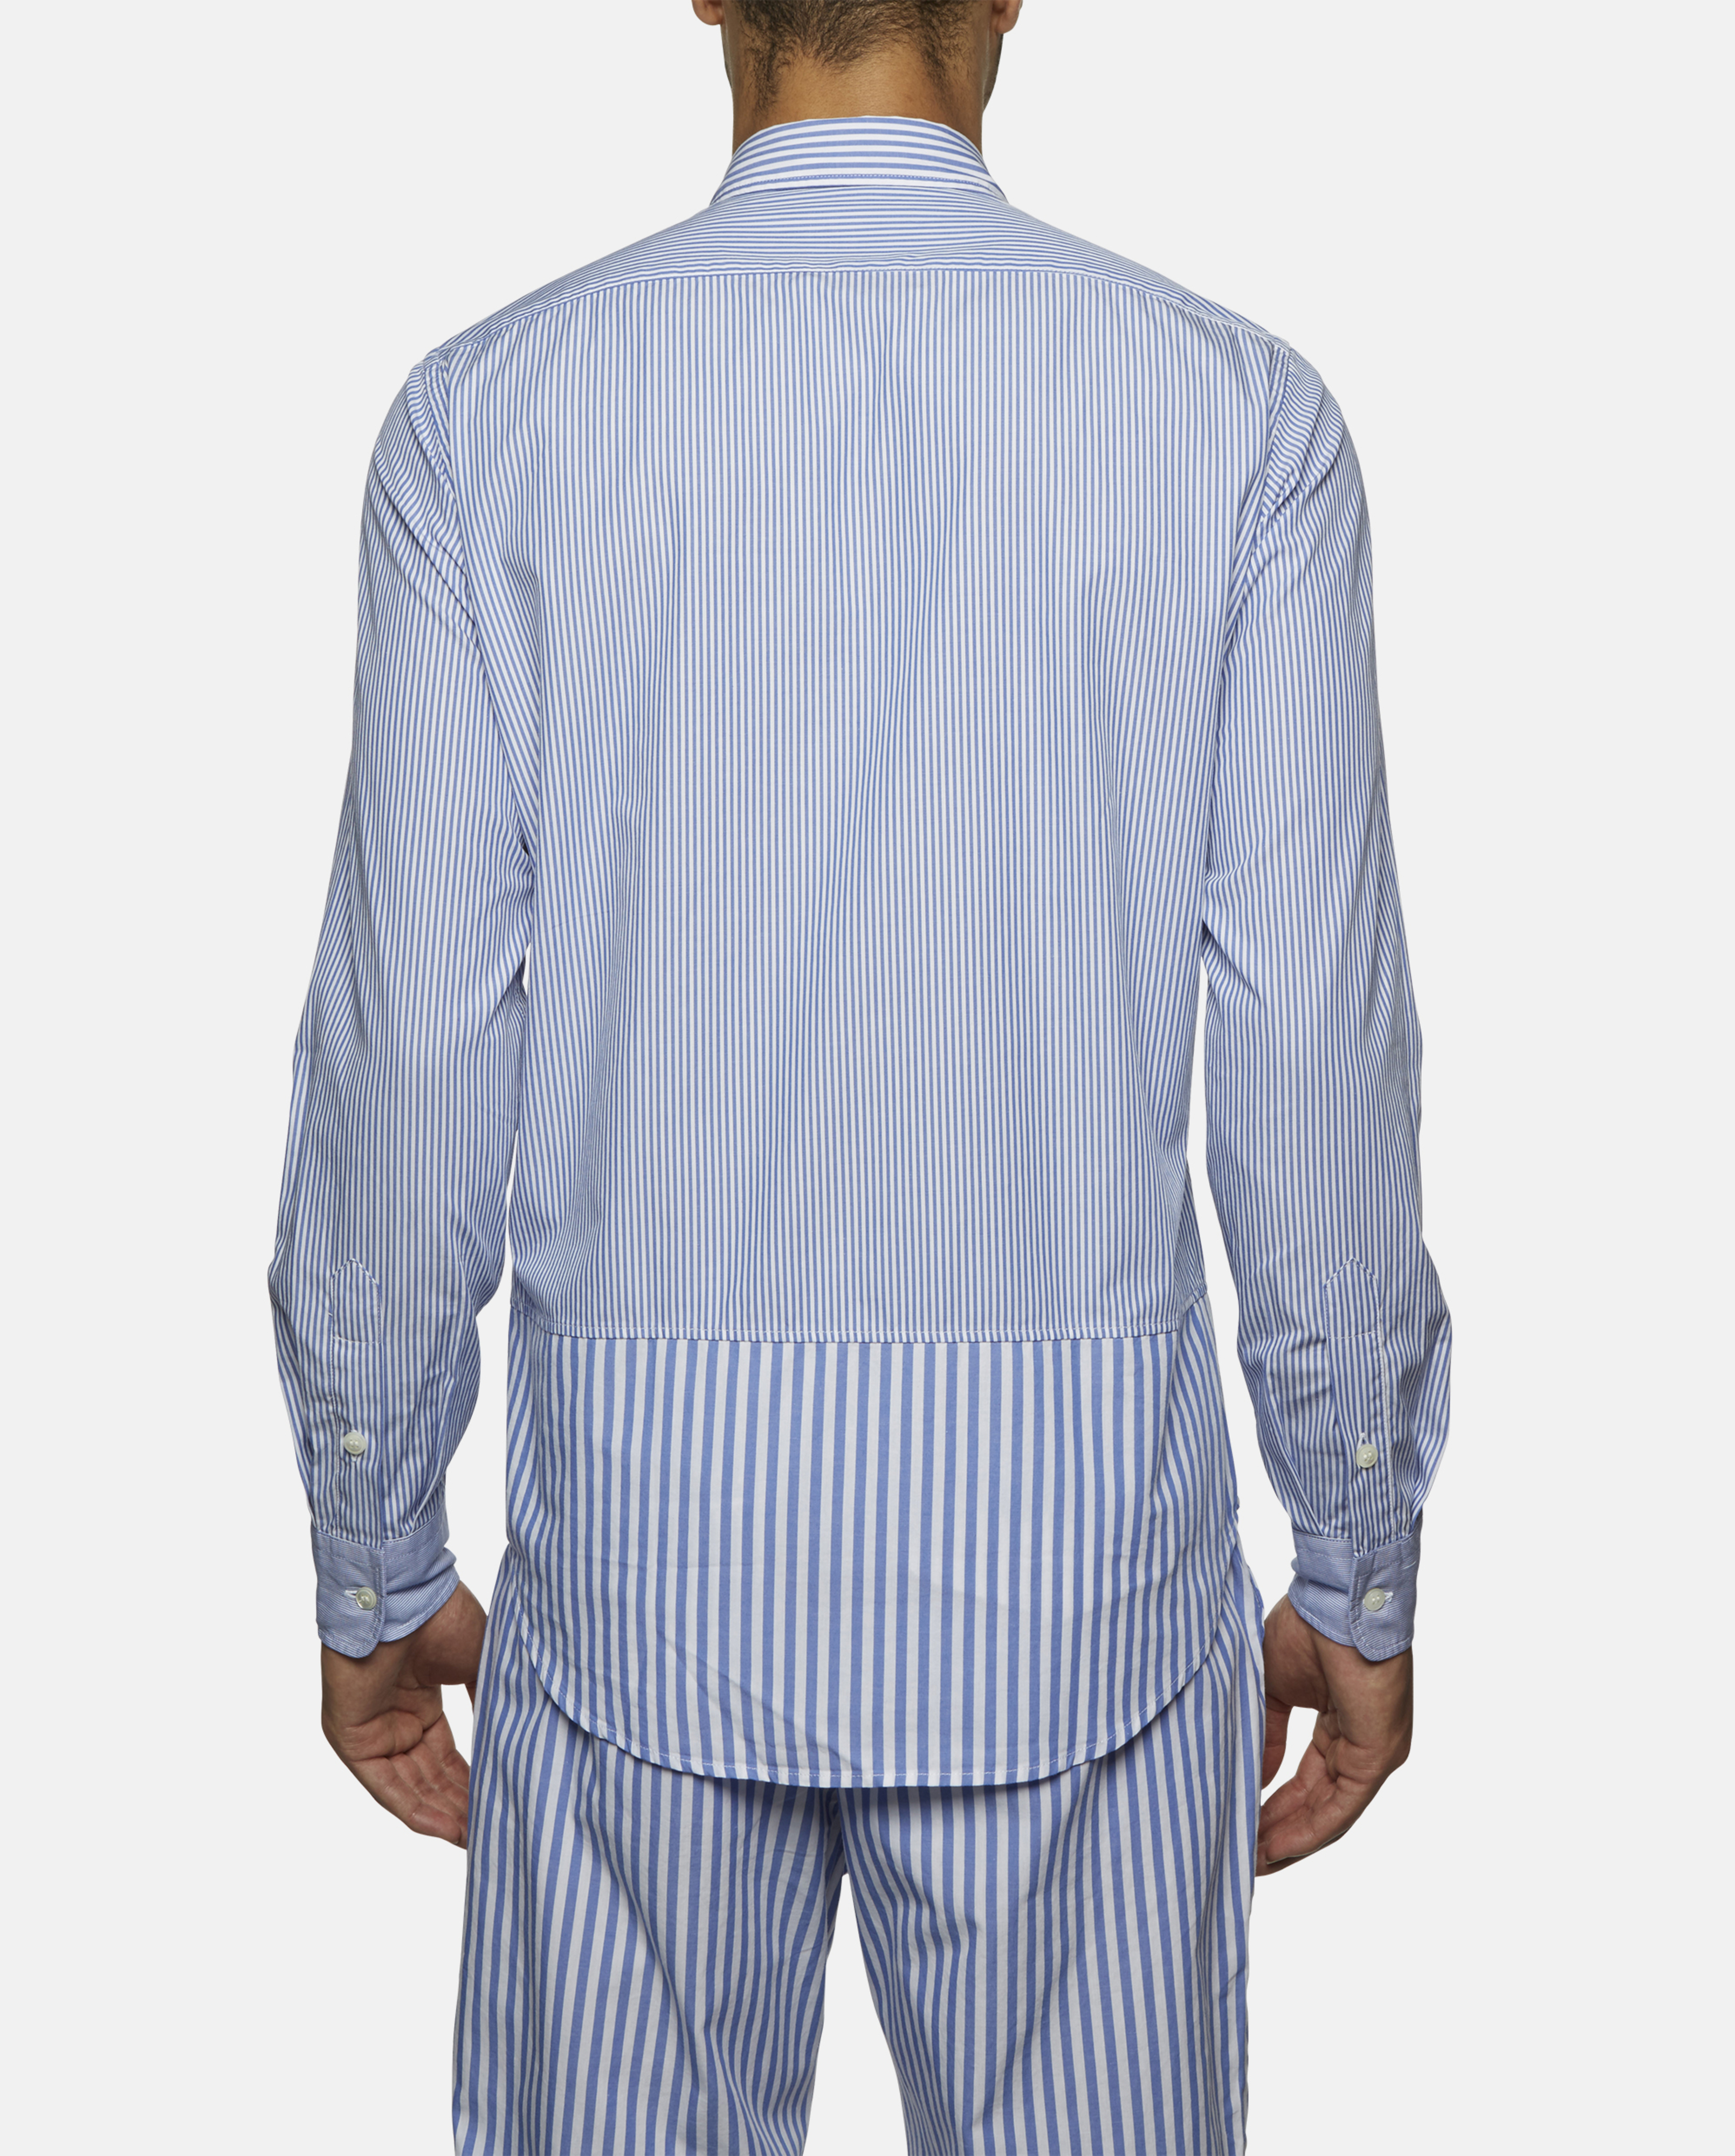 Lyst Roundel London Striped Long Sleeve Shirt In Blue